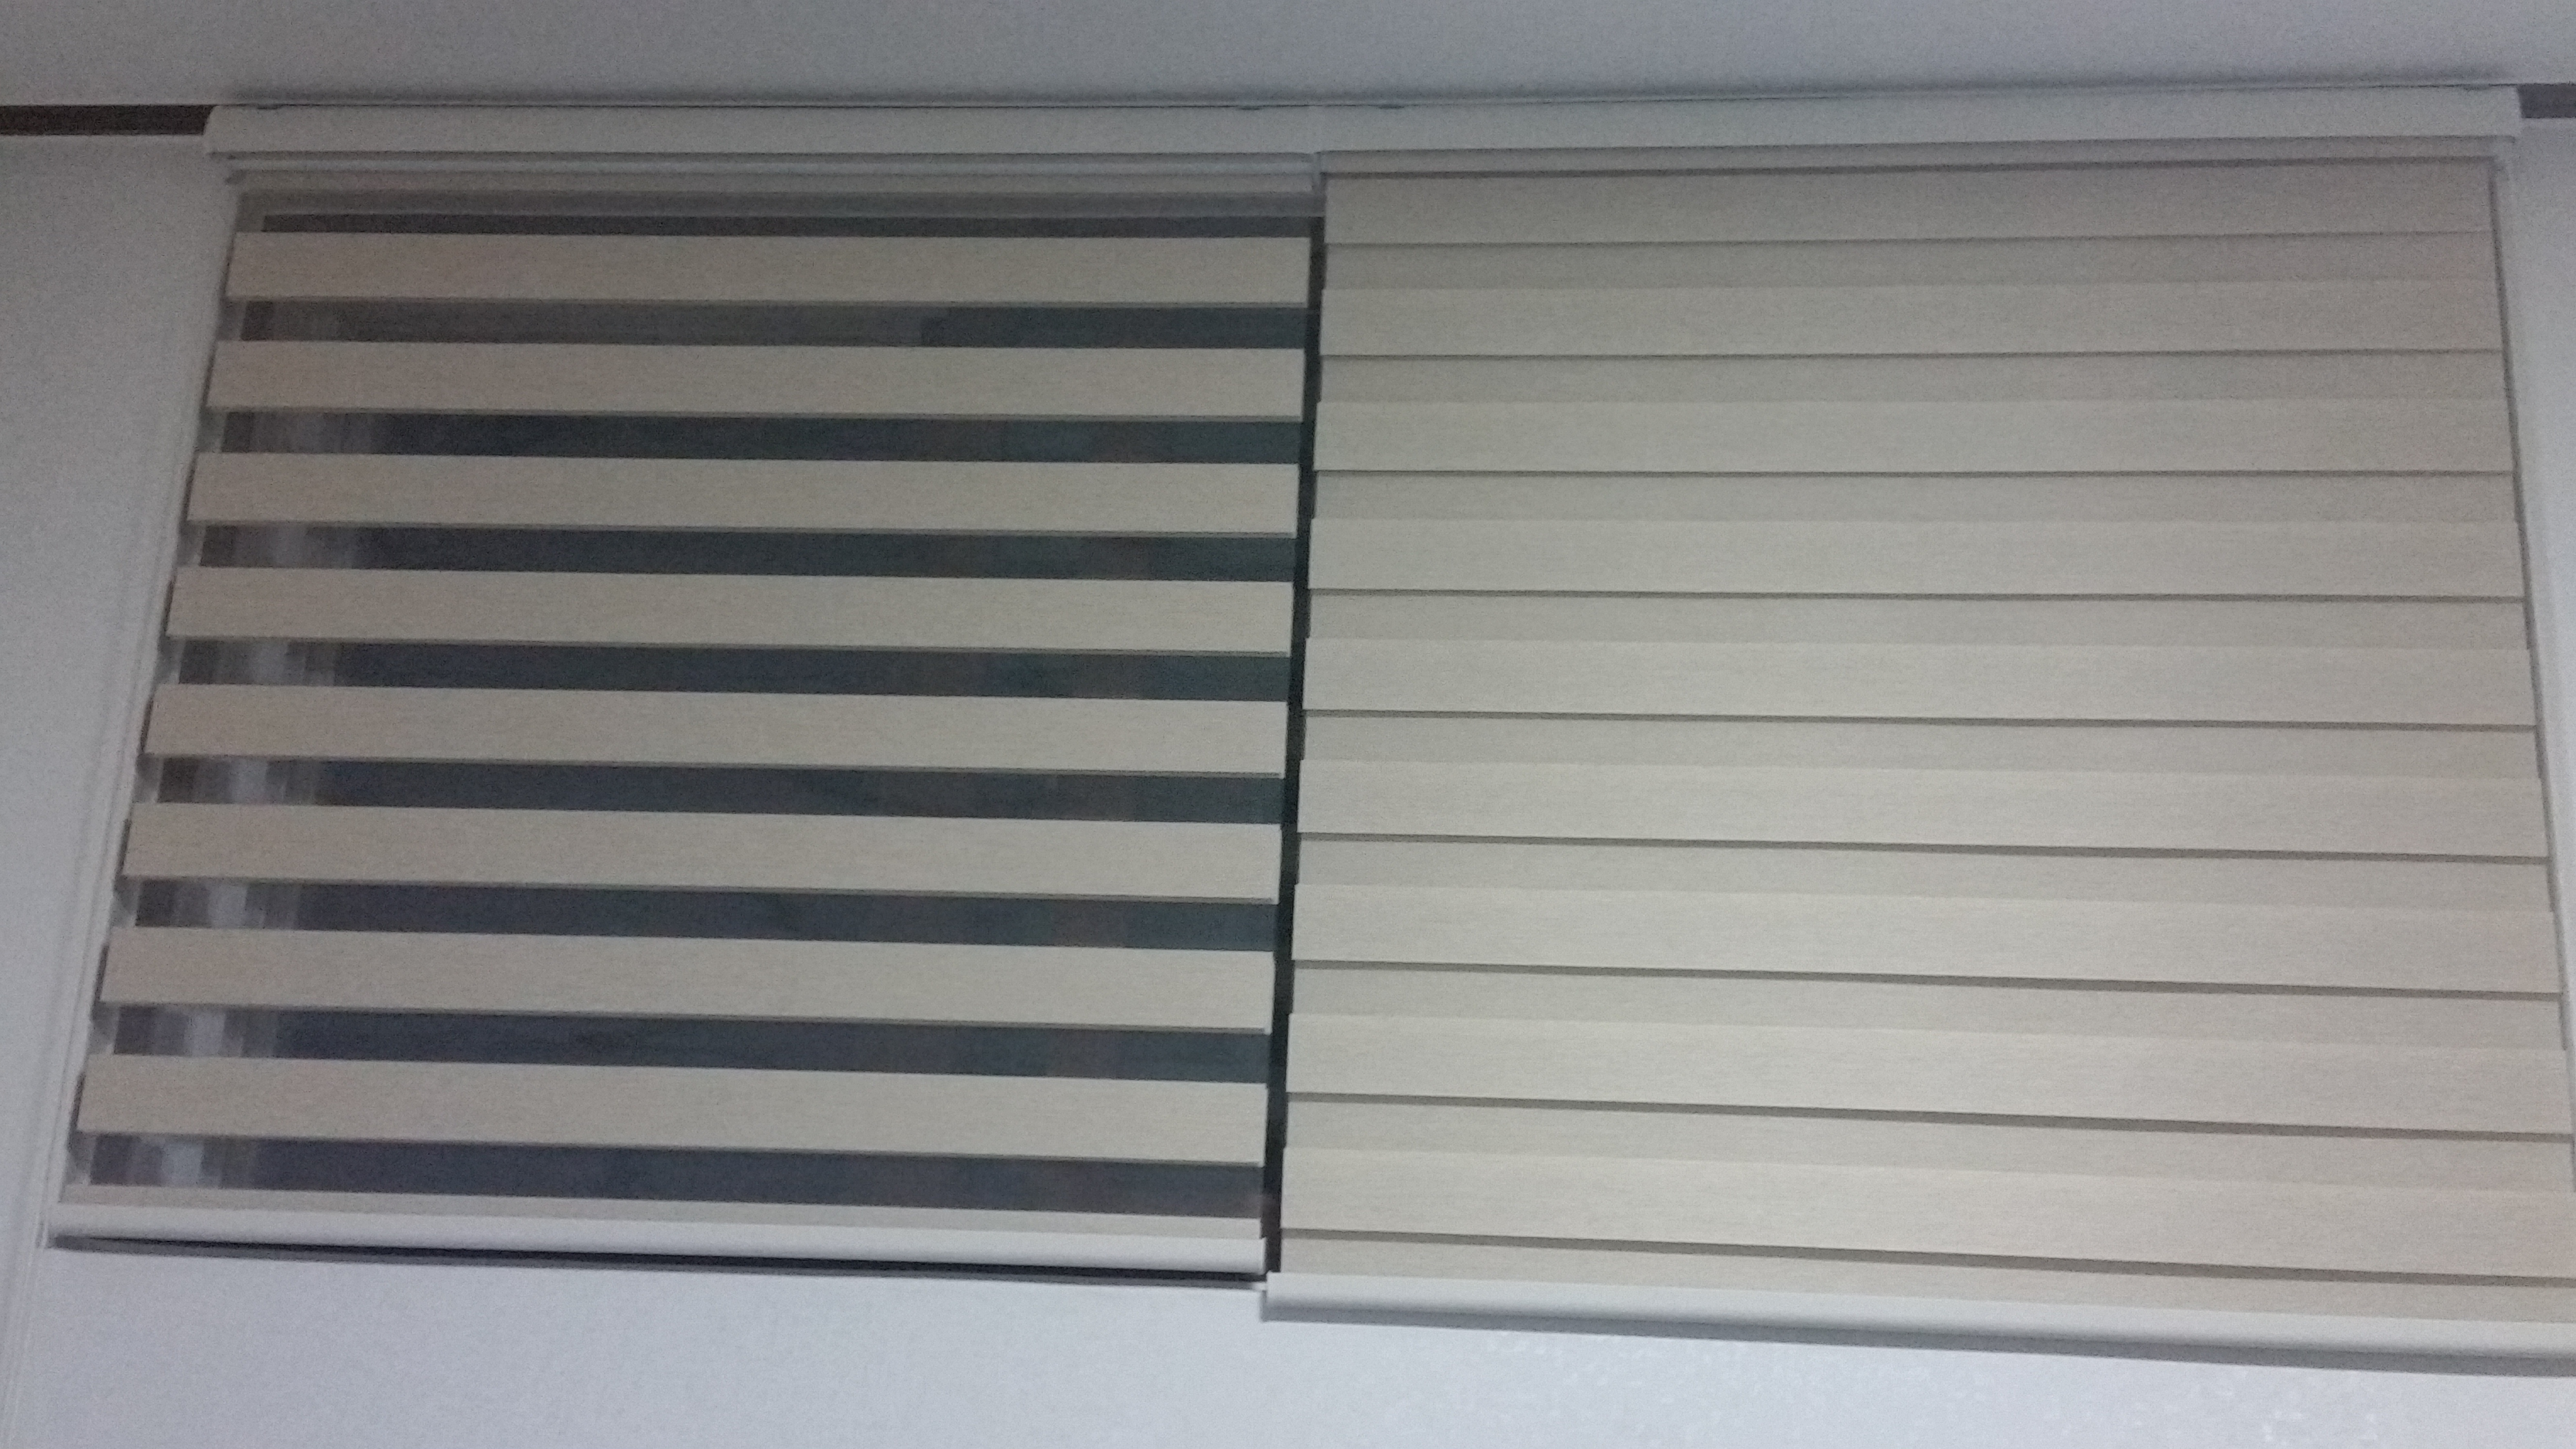 step blinds cleaner horizontal ways wikihow to clean